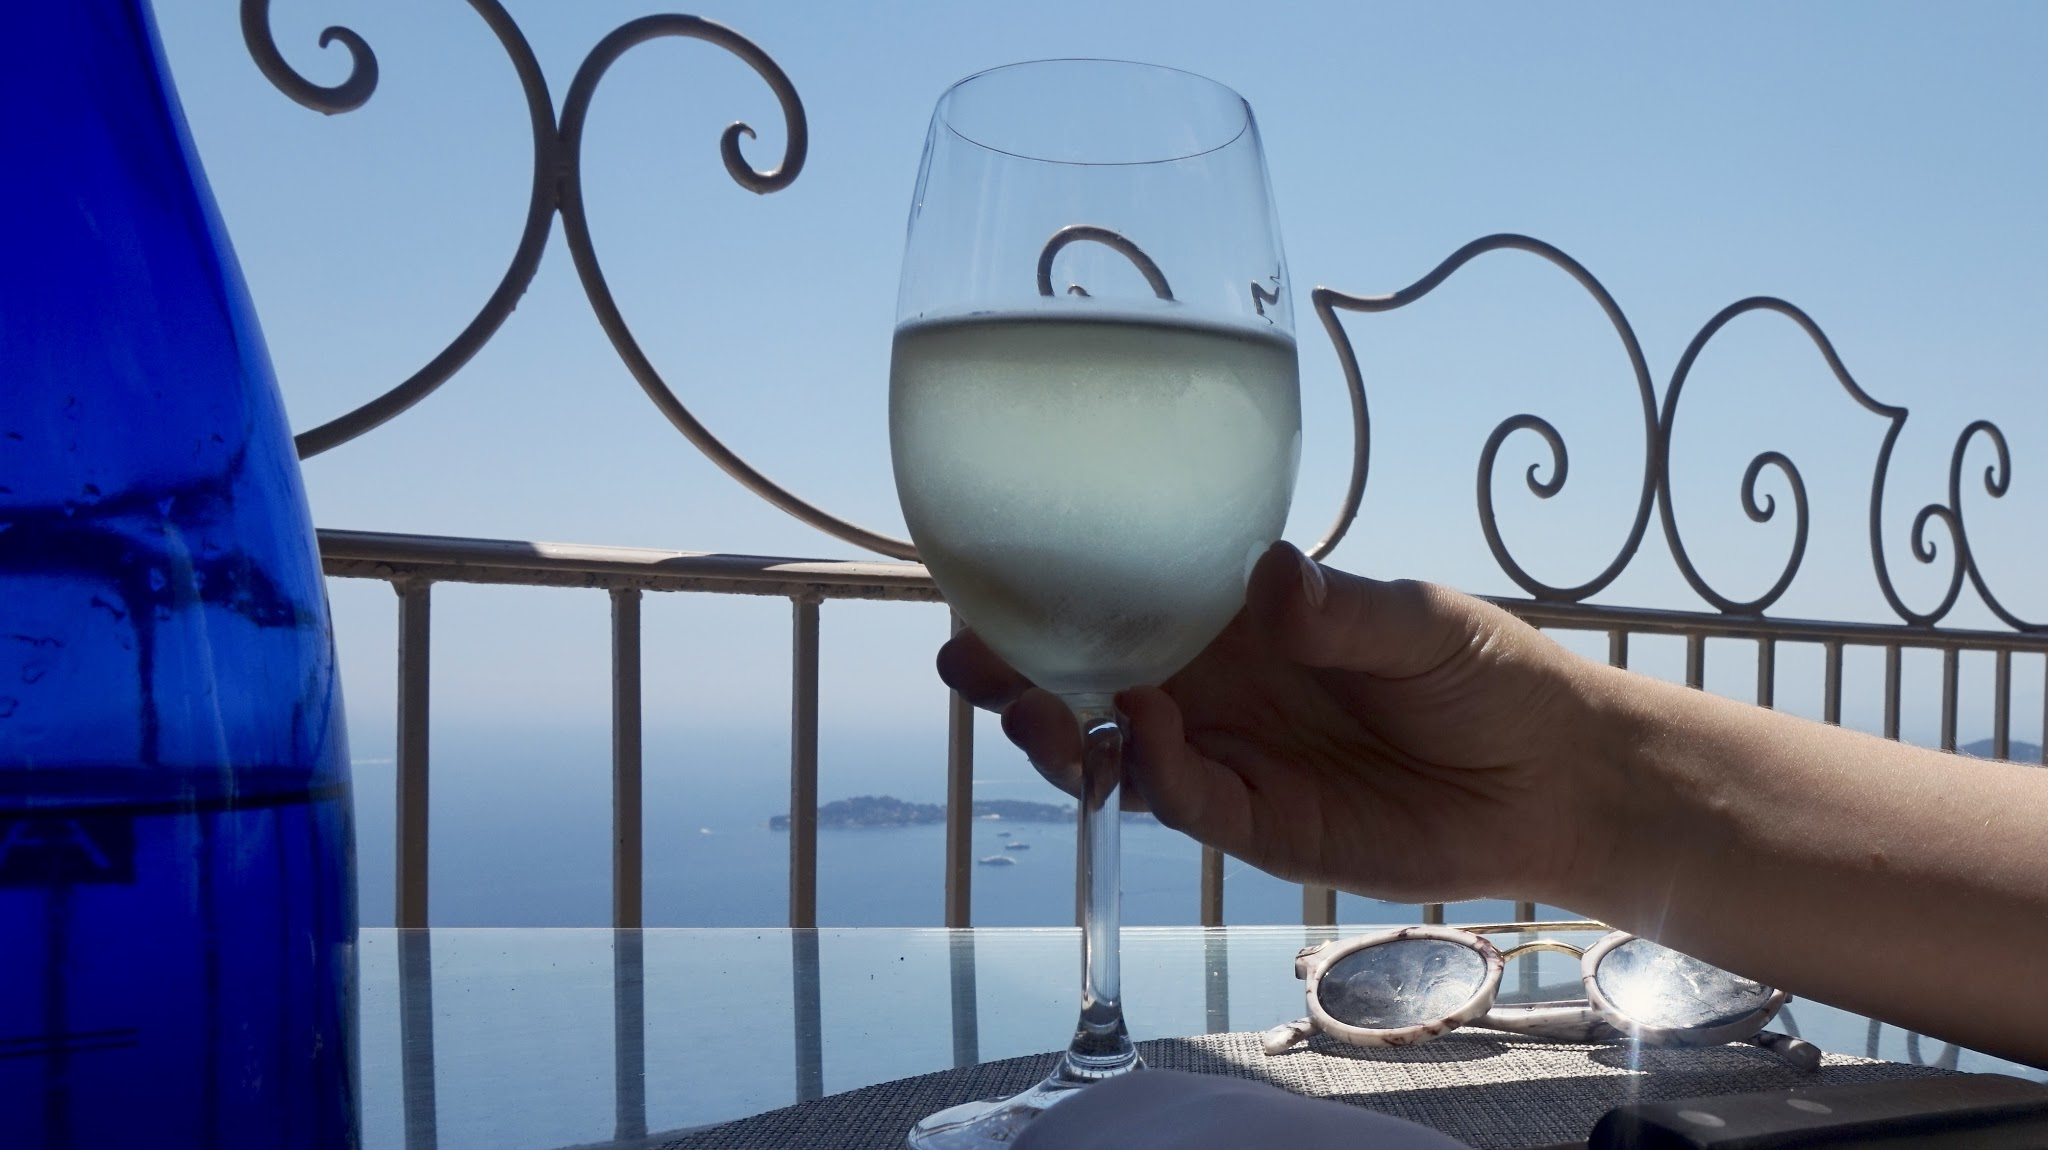 woman holds a glass of white wine in front of some railings overlooking the sea